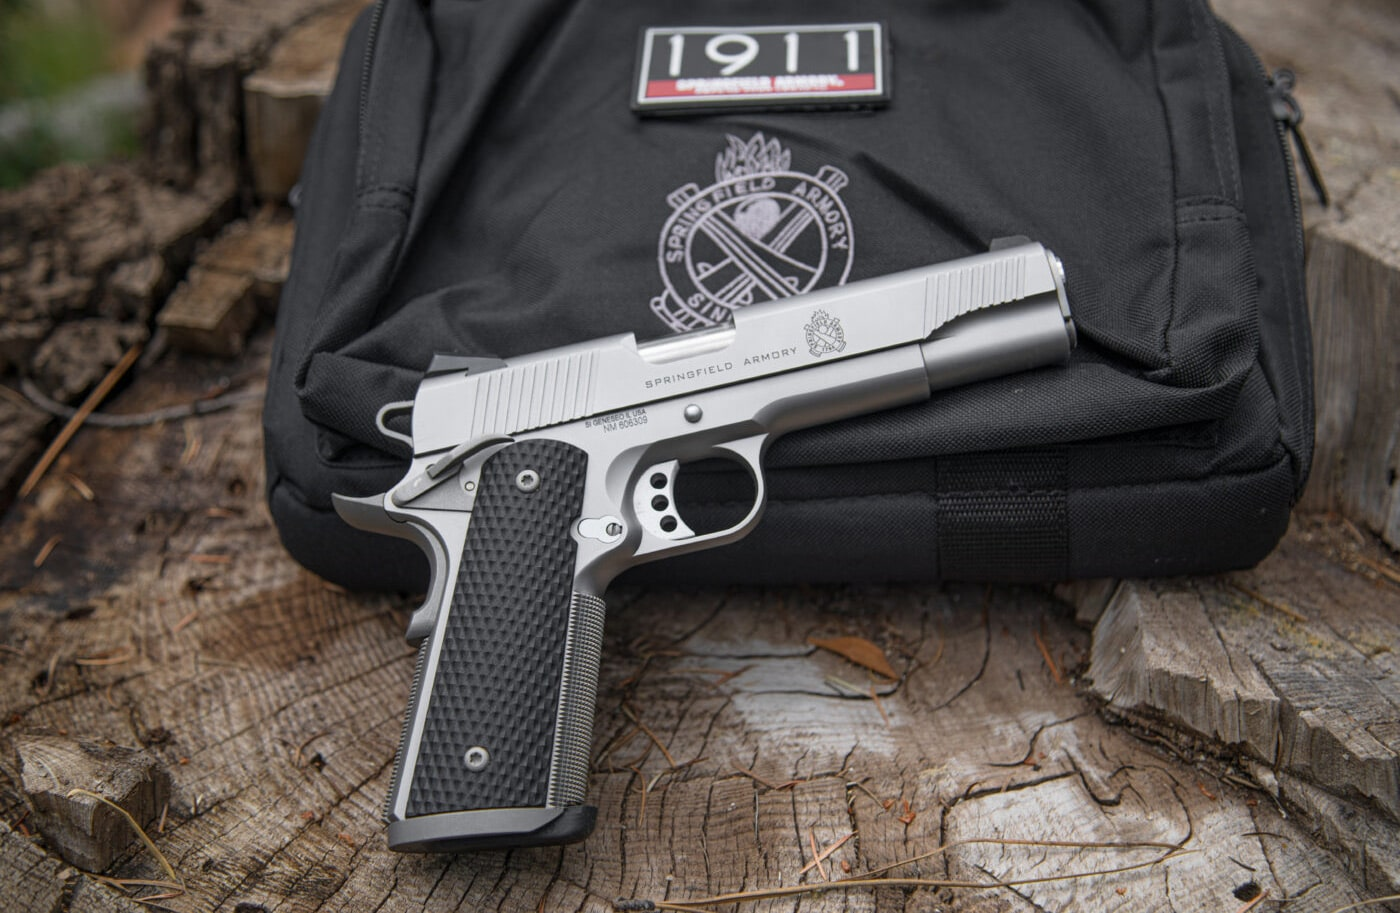 Stainless steel TRP by Springfield Armory along with gear included